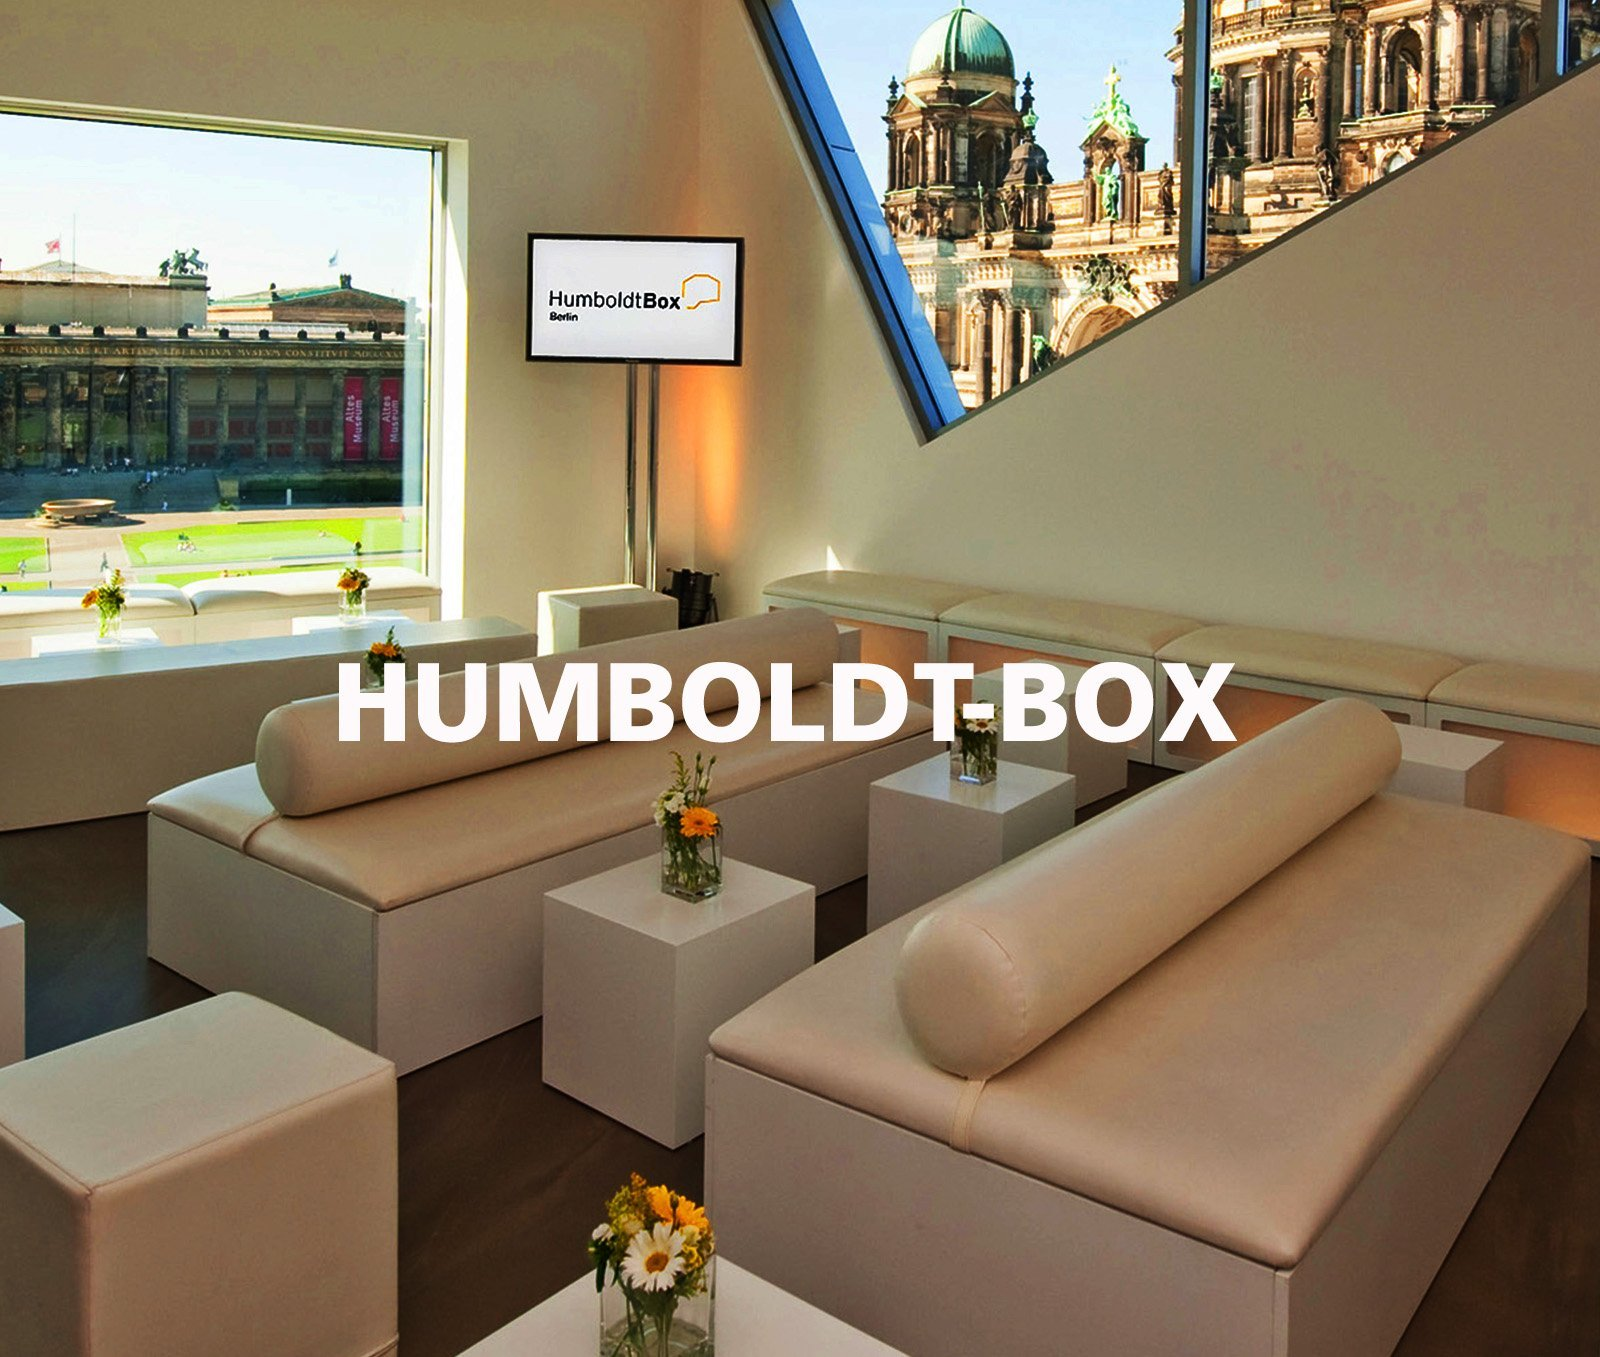 FLORIS Partner Location Humboldt-Box